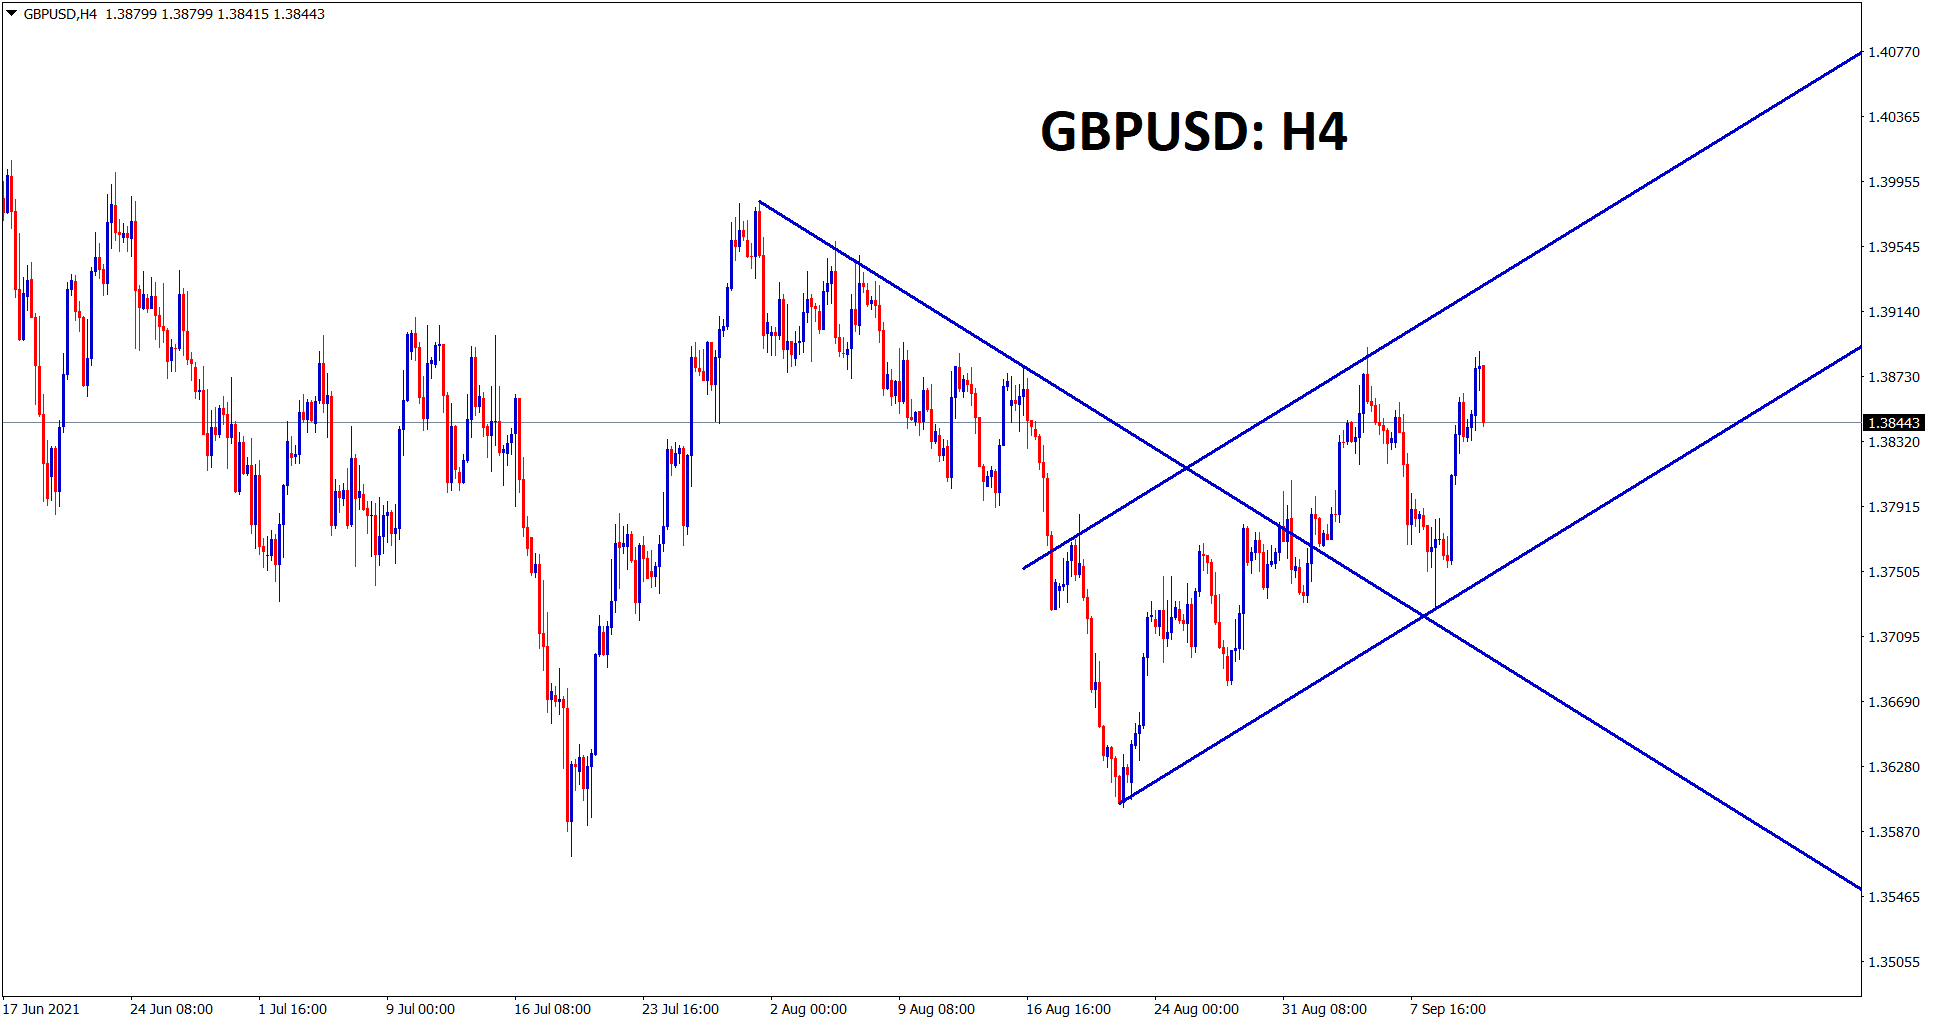 GBPUSD has retested the broken downtrend line and started moving in an Ascending channel